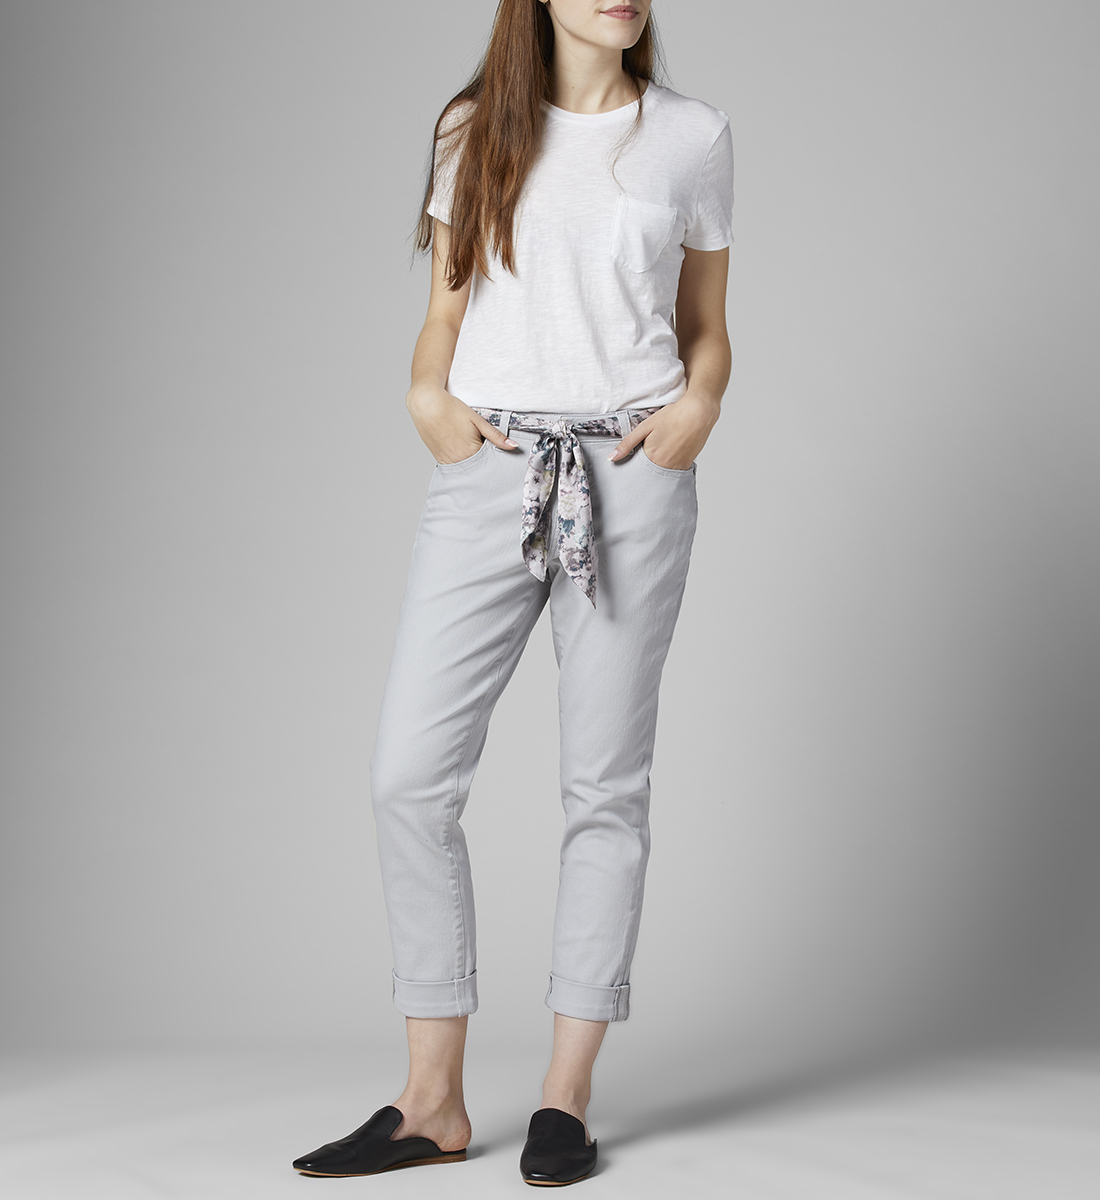 Carter Mid Rise Girlfriend Jeans with Satin Belt, , hi-res